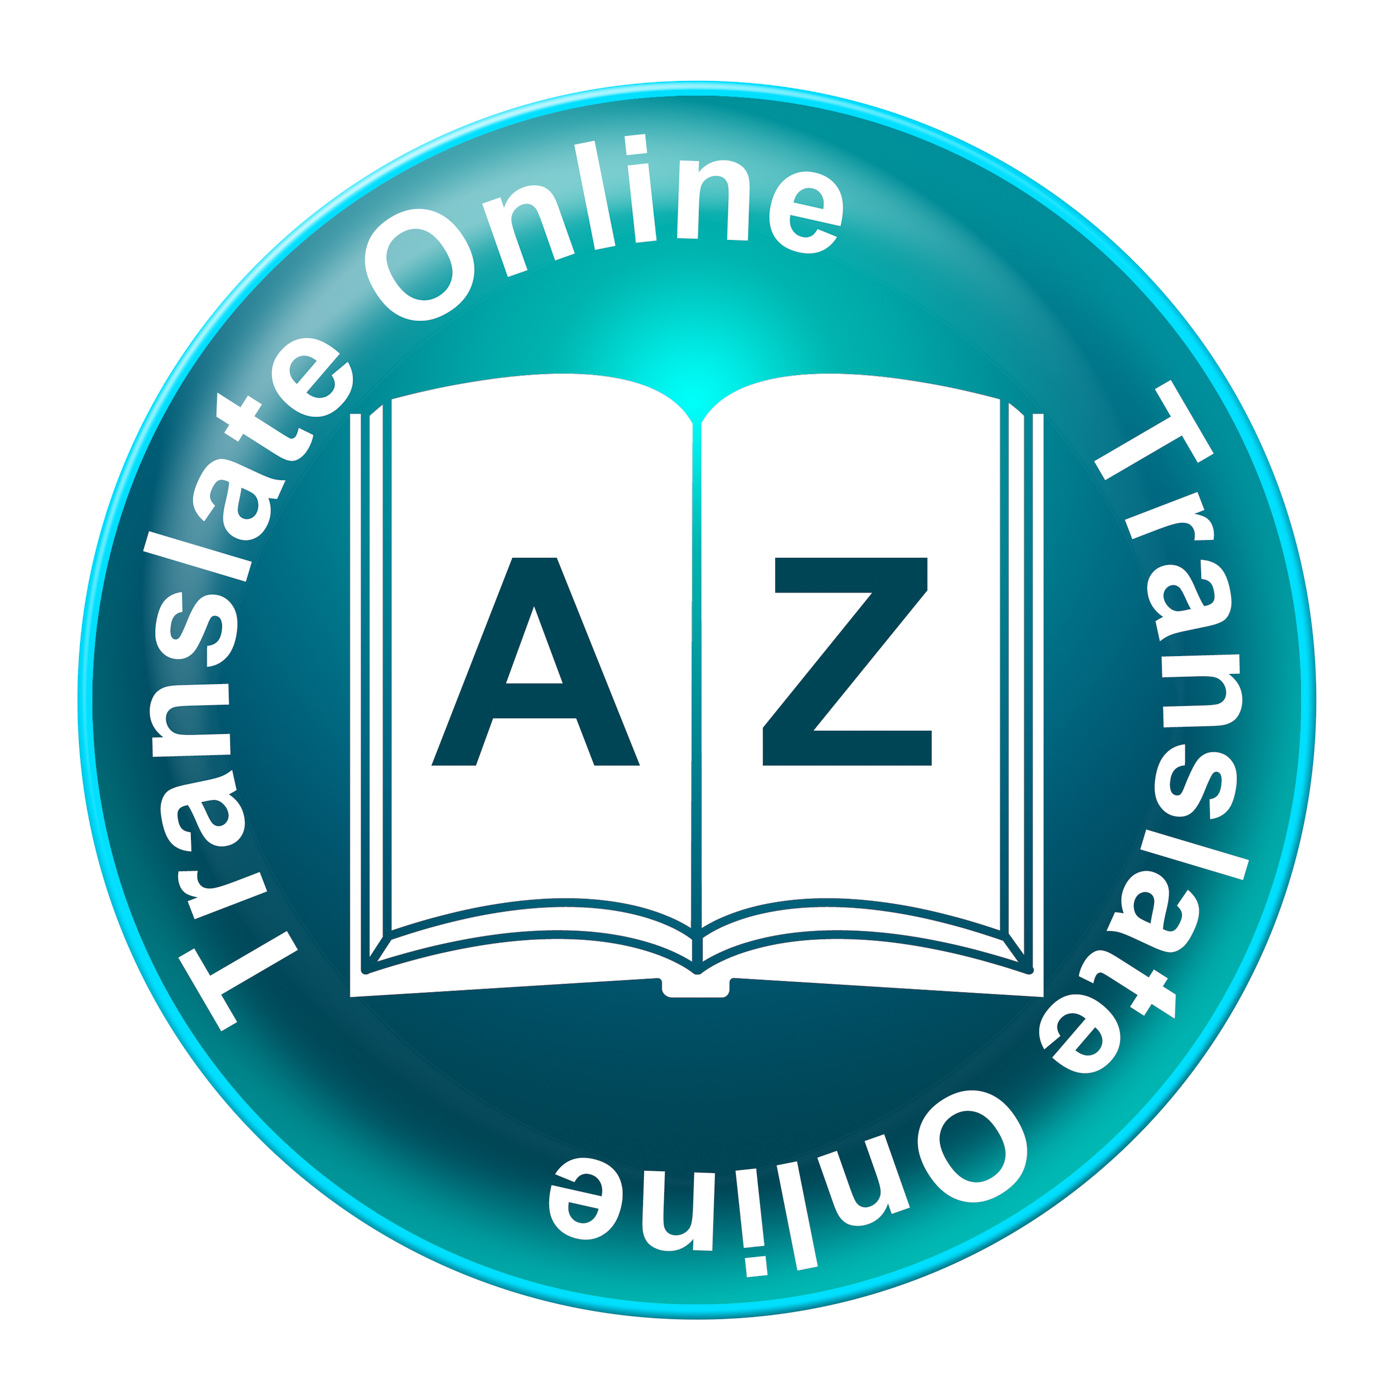 Translate Online Represents Foreign Language And Convert, Convert, Schooling, Websites, Website, HQ Photo